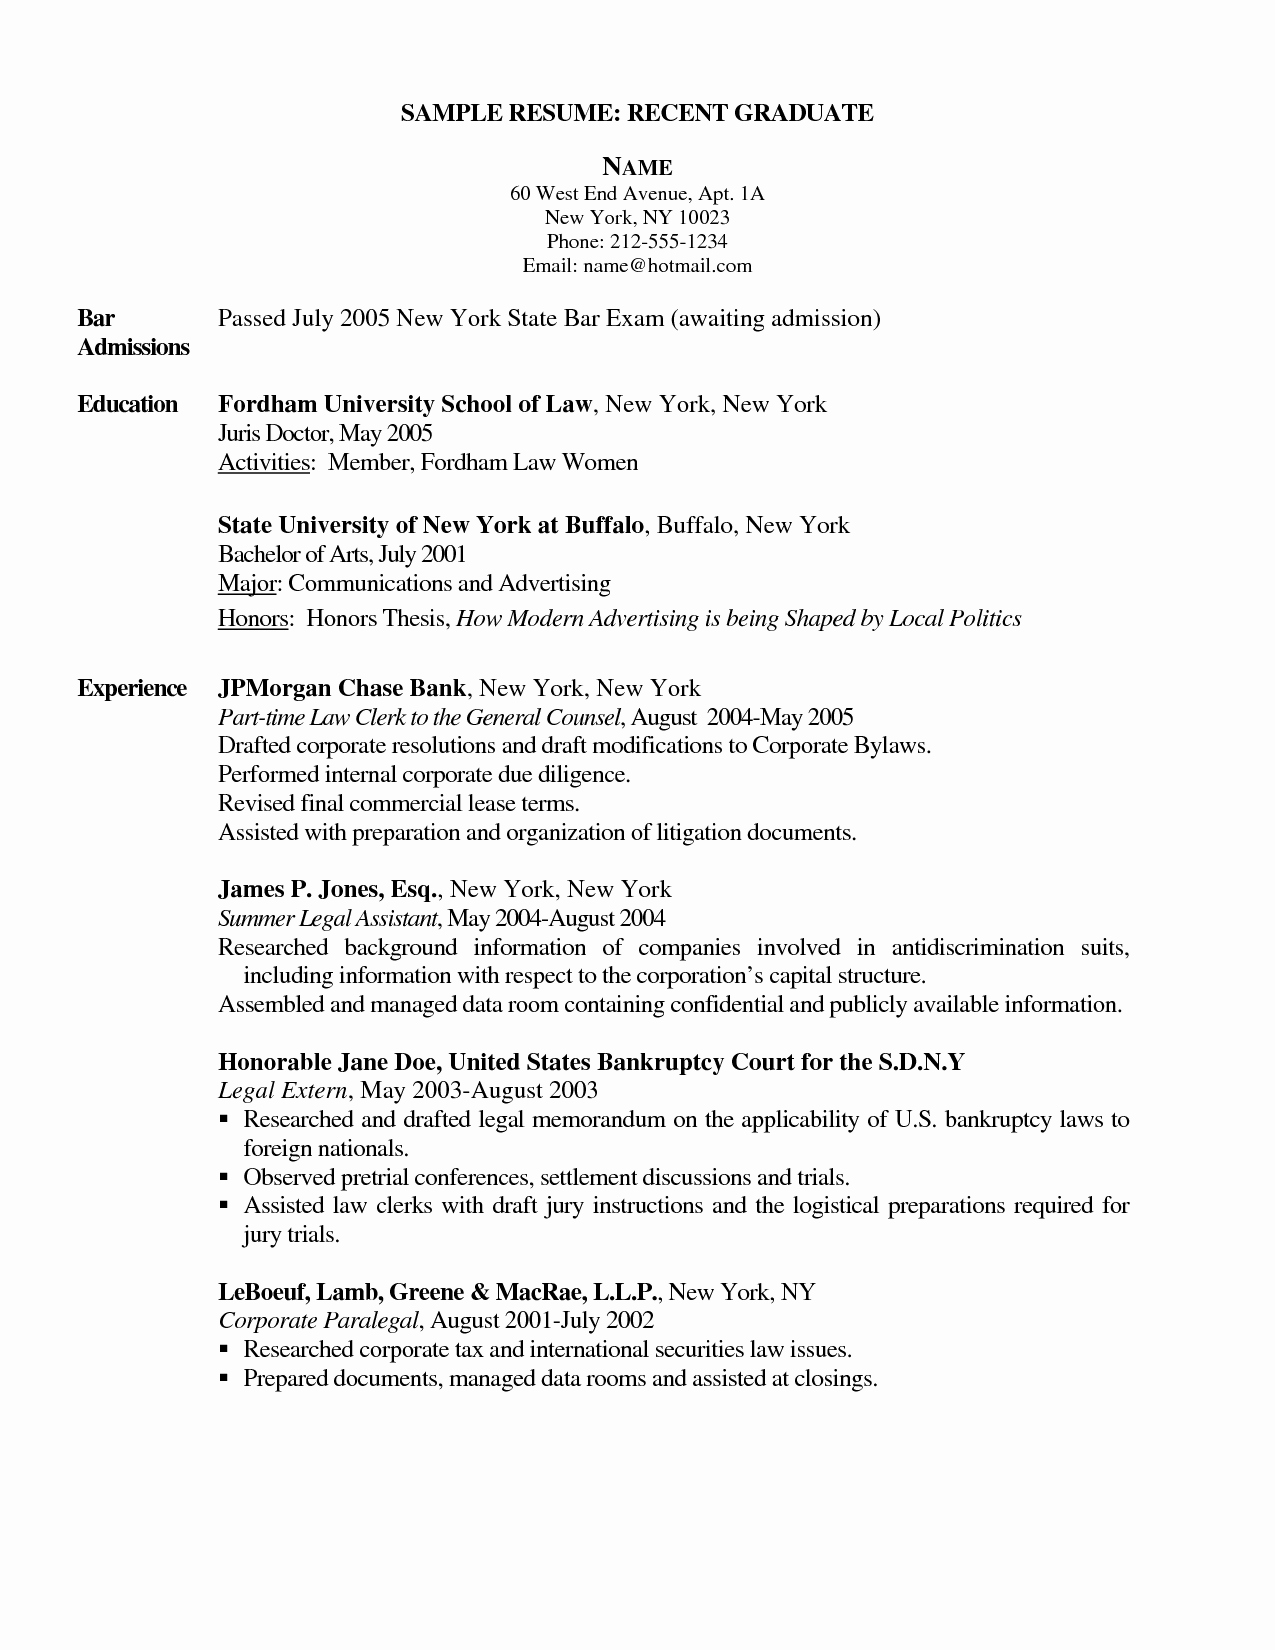 Graduated with Honors Resume Best Of 1 2 3 Help Me Essays Do My Homework Essays Uk